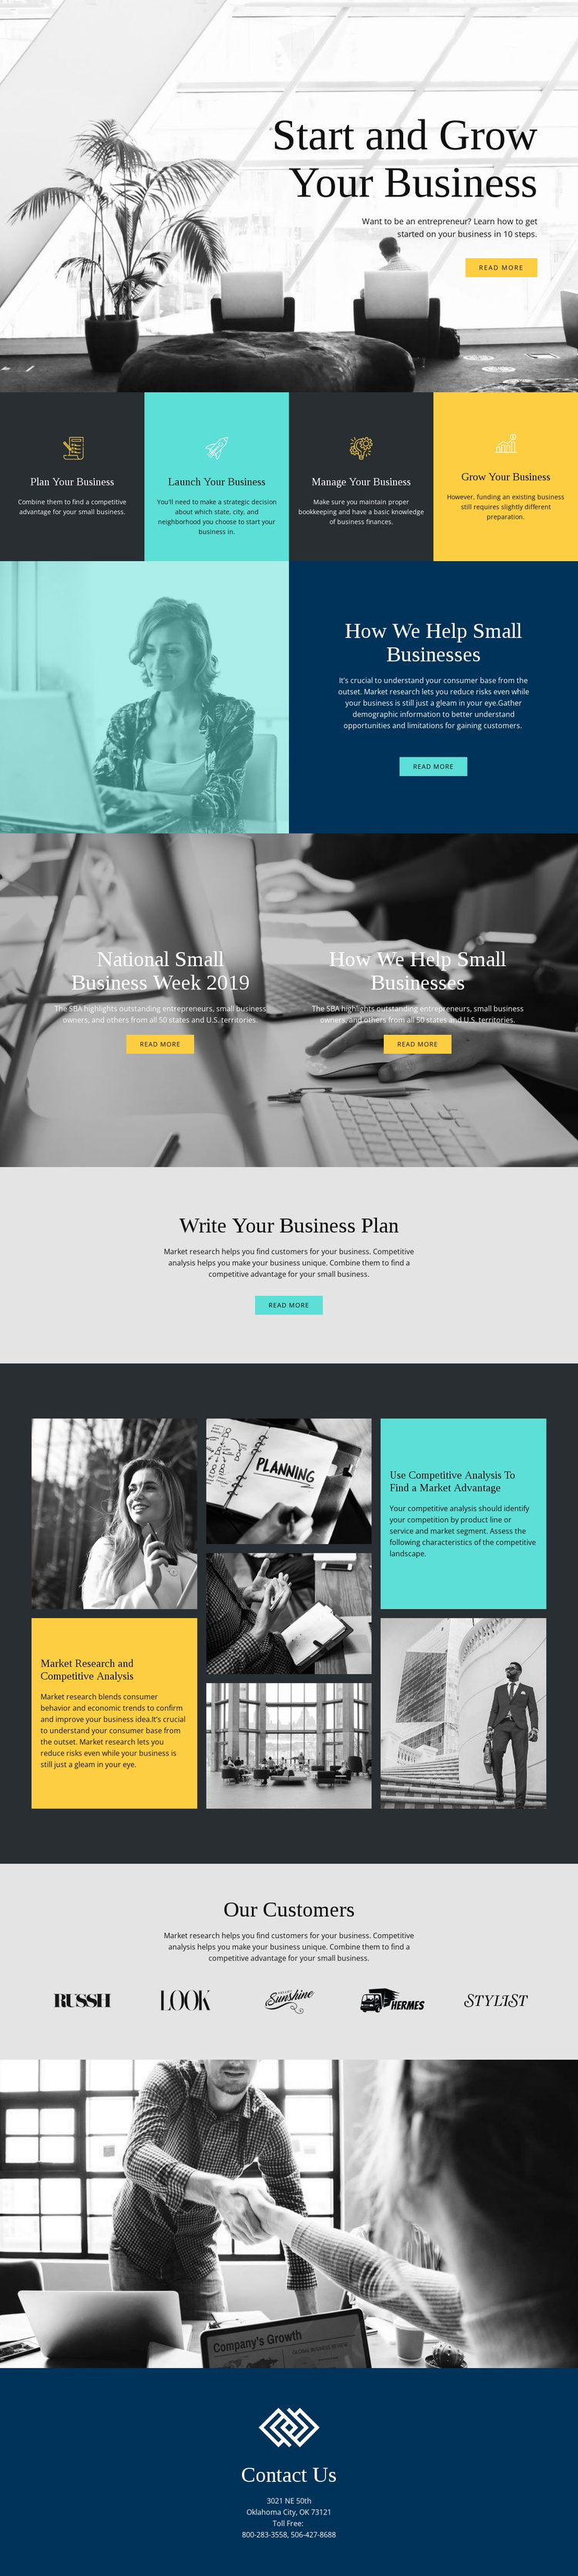 Start and grow your business Joomla Template